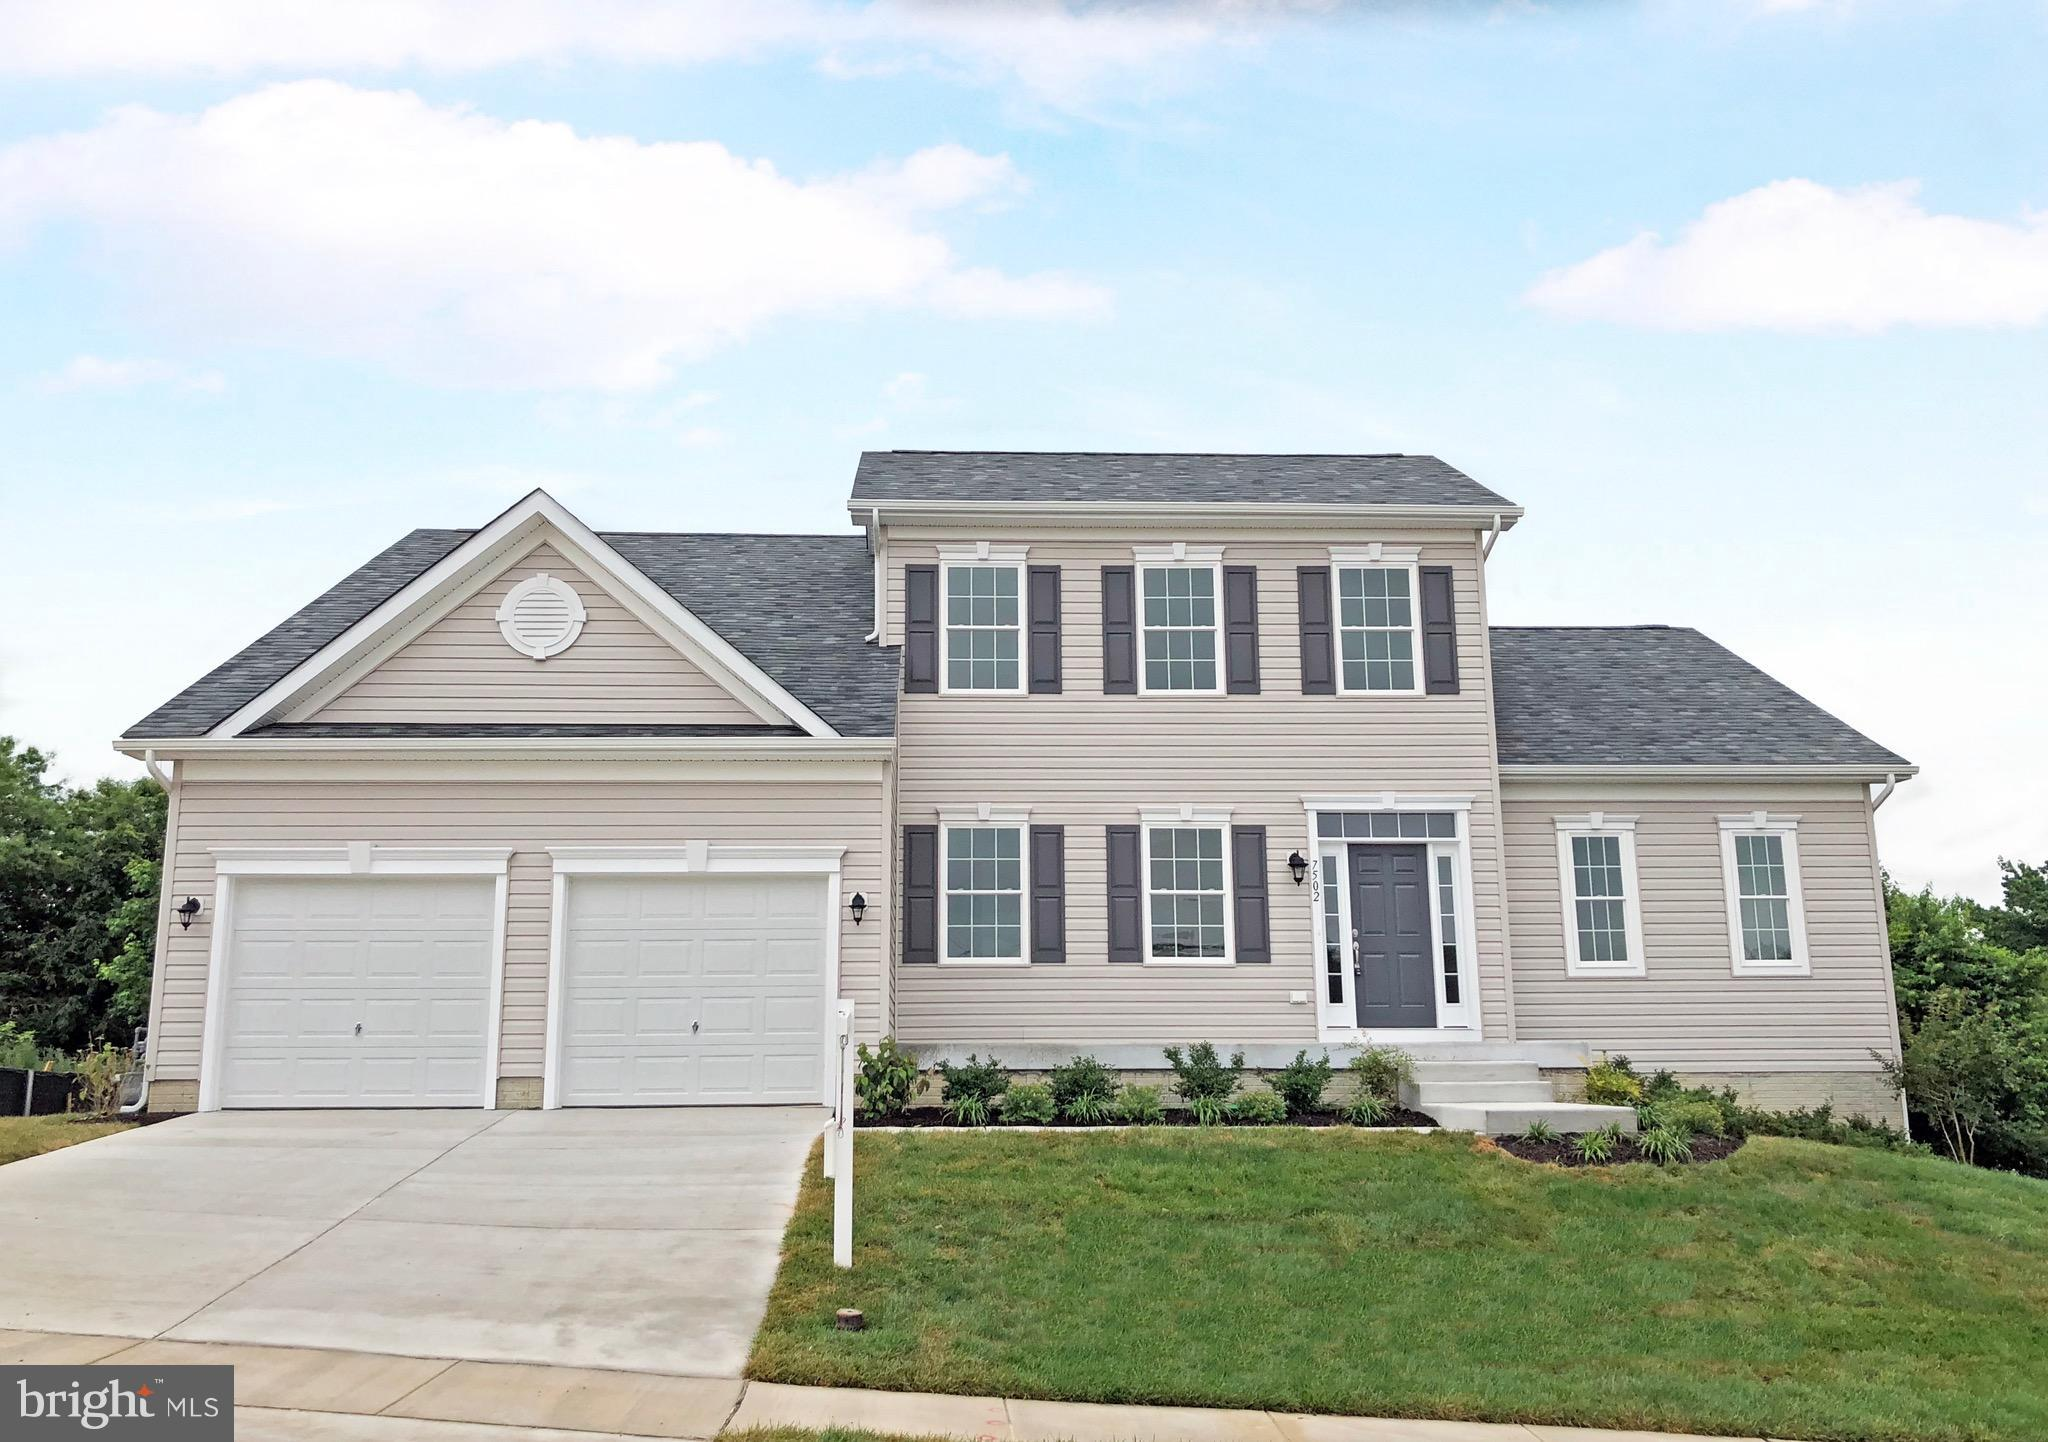 7505 RETREAT PLACE, HANOVER, MD 21076